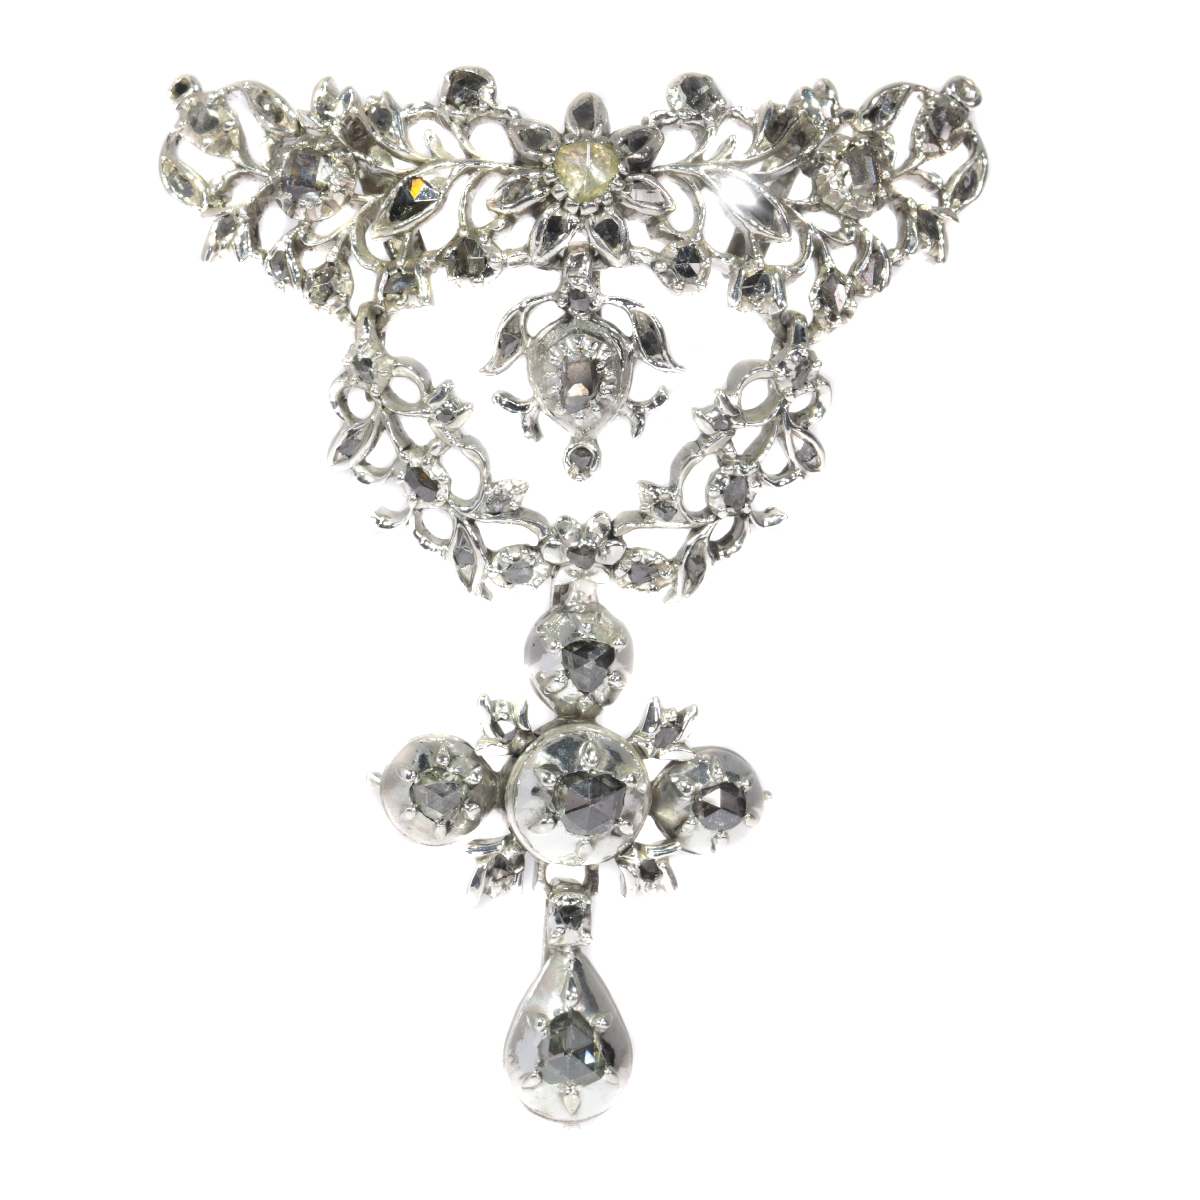 Antique Flemish cross pendant set with diamonds